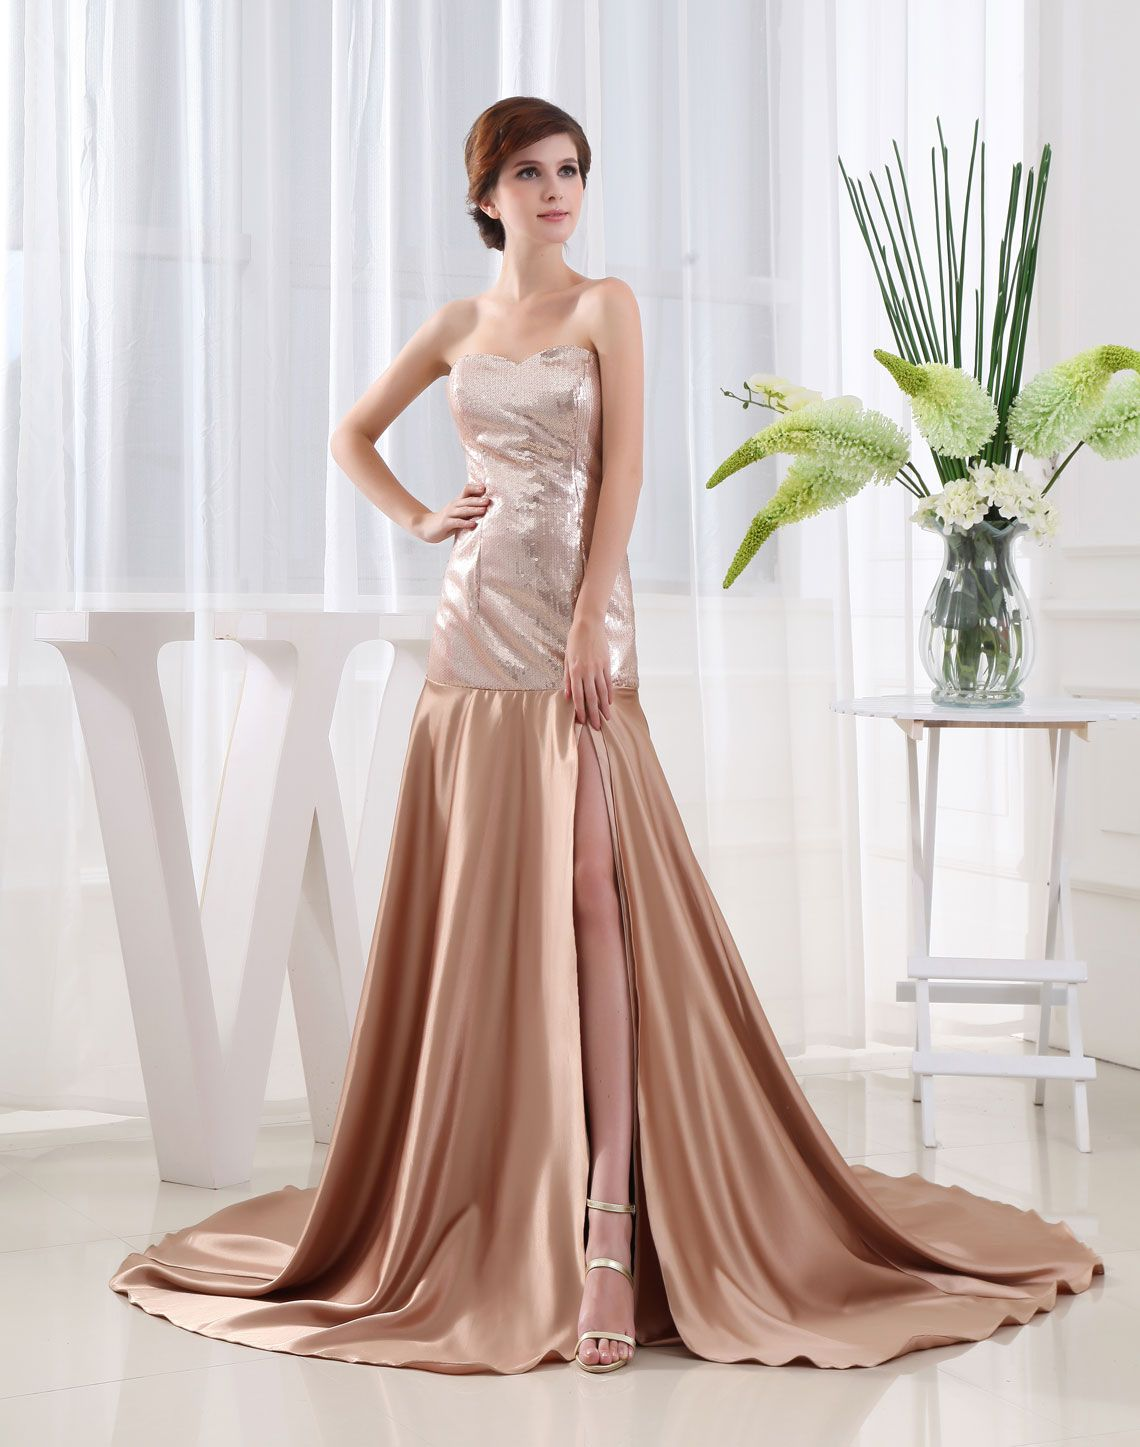 Prom dress prom dresses raindrops on roses and whiskers on kittens